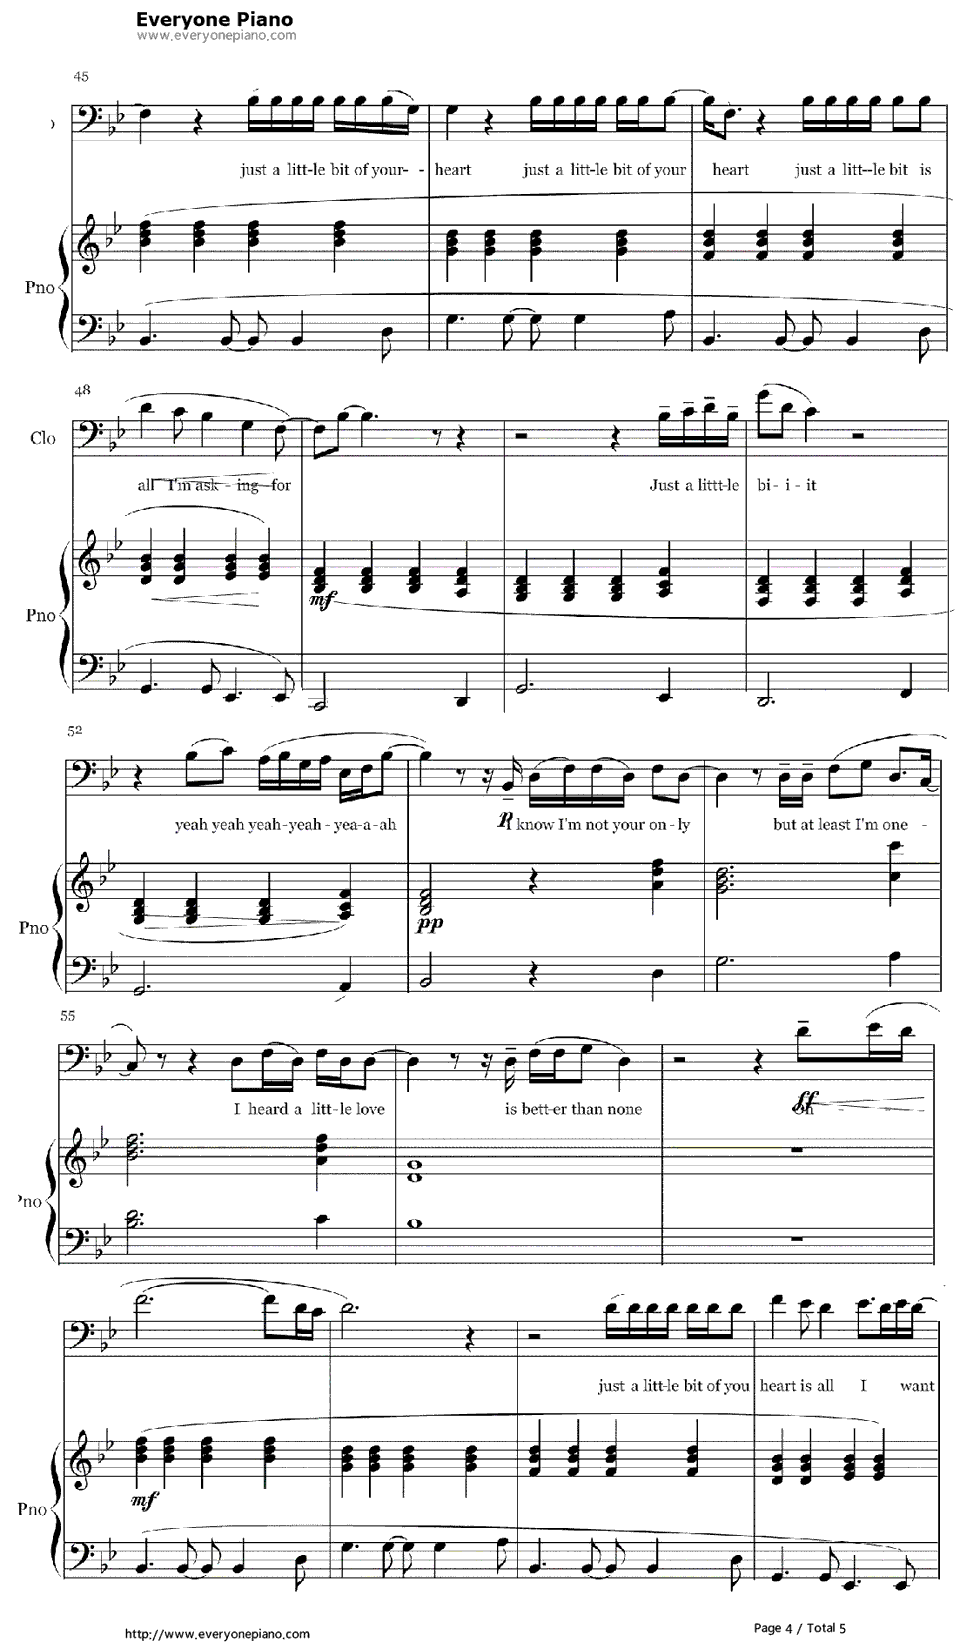 Free just a little bit of your heart ariana grande sheet music free just a little bit of your heart ariana grande sheet music preview 4 hexwebz Choice Image